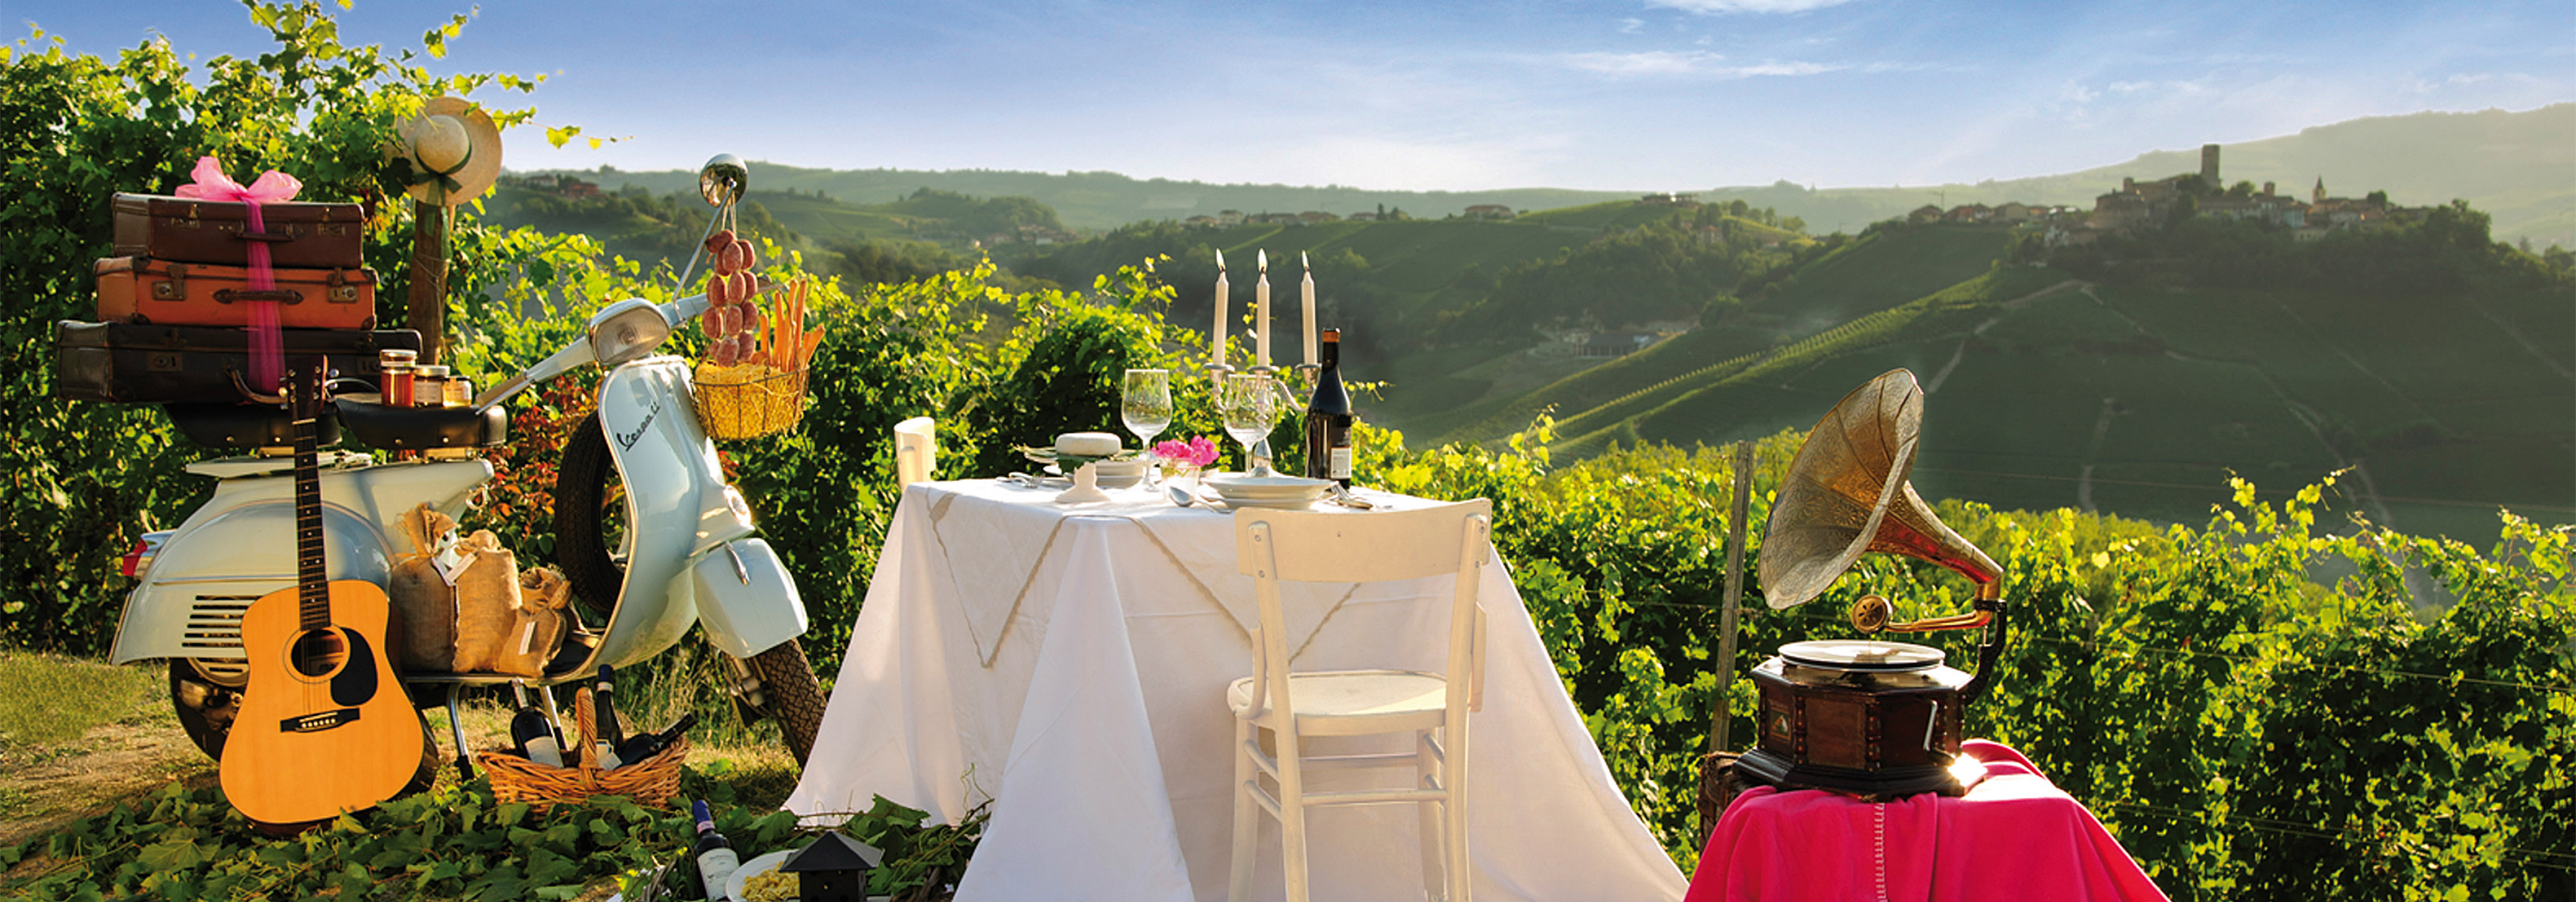 Langhe Experience - Tours & Events - What is your dream vacation